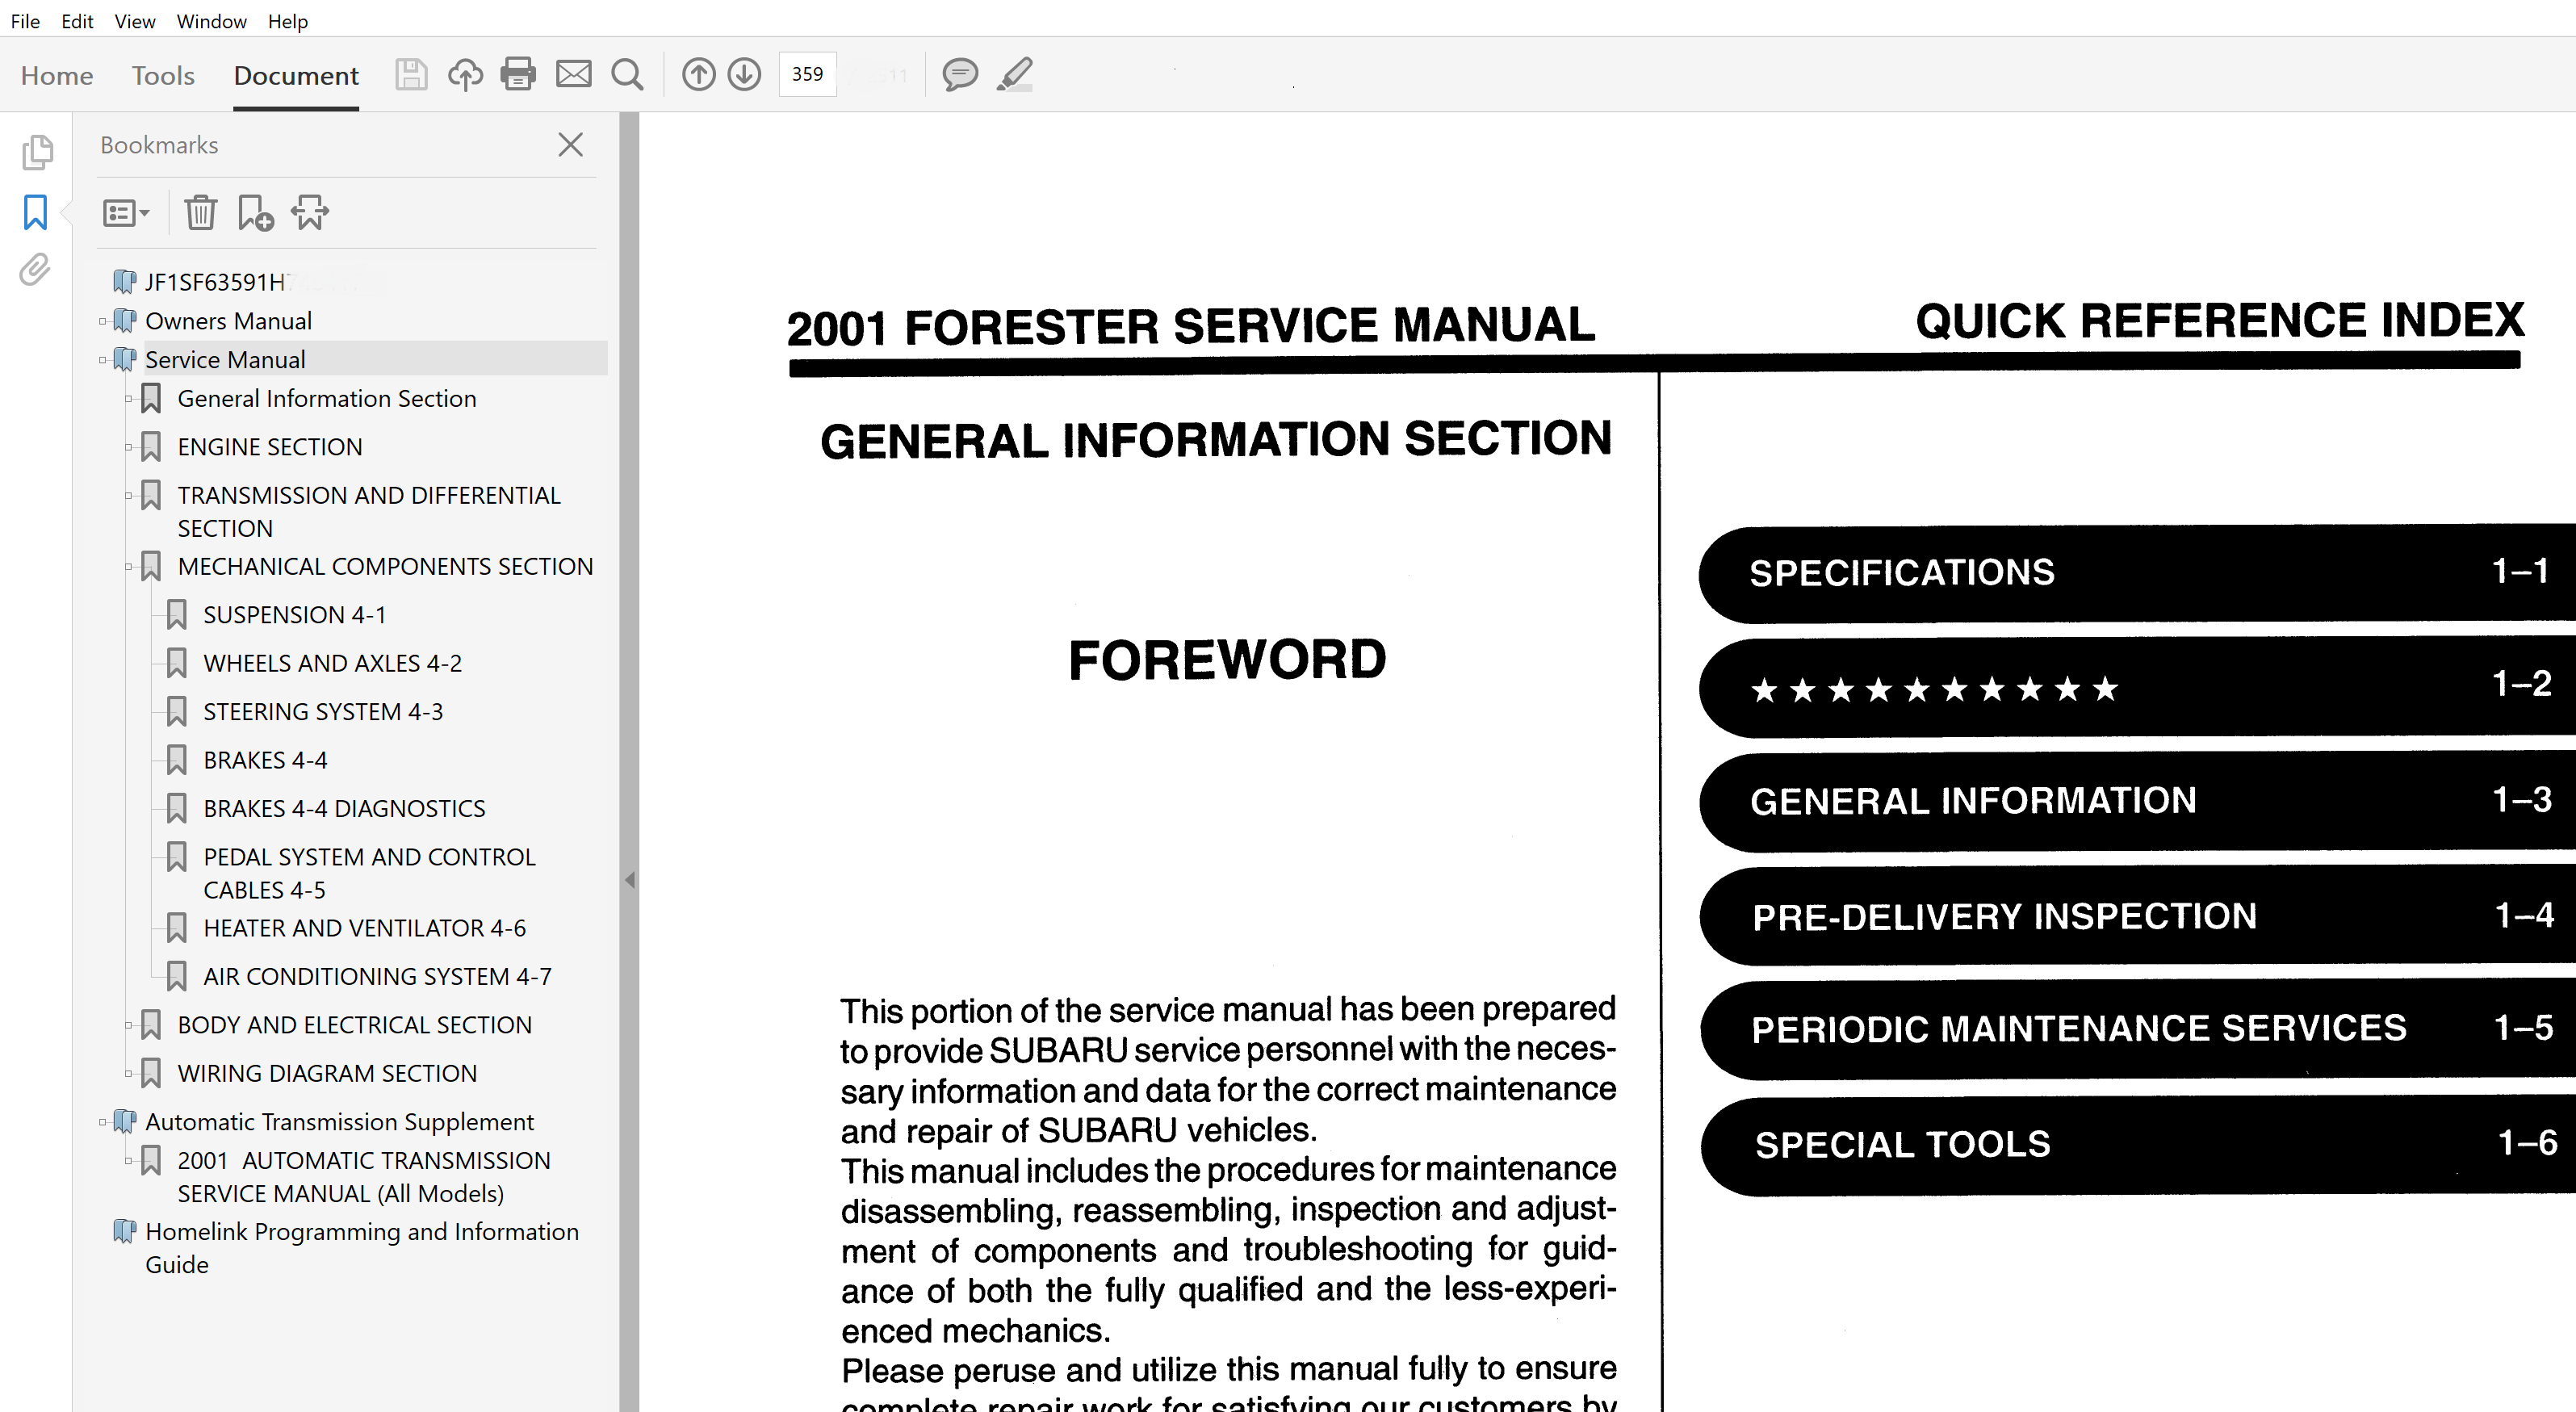 2001 Subaru Forester repair manual